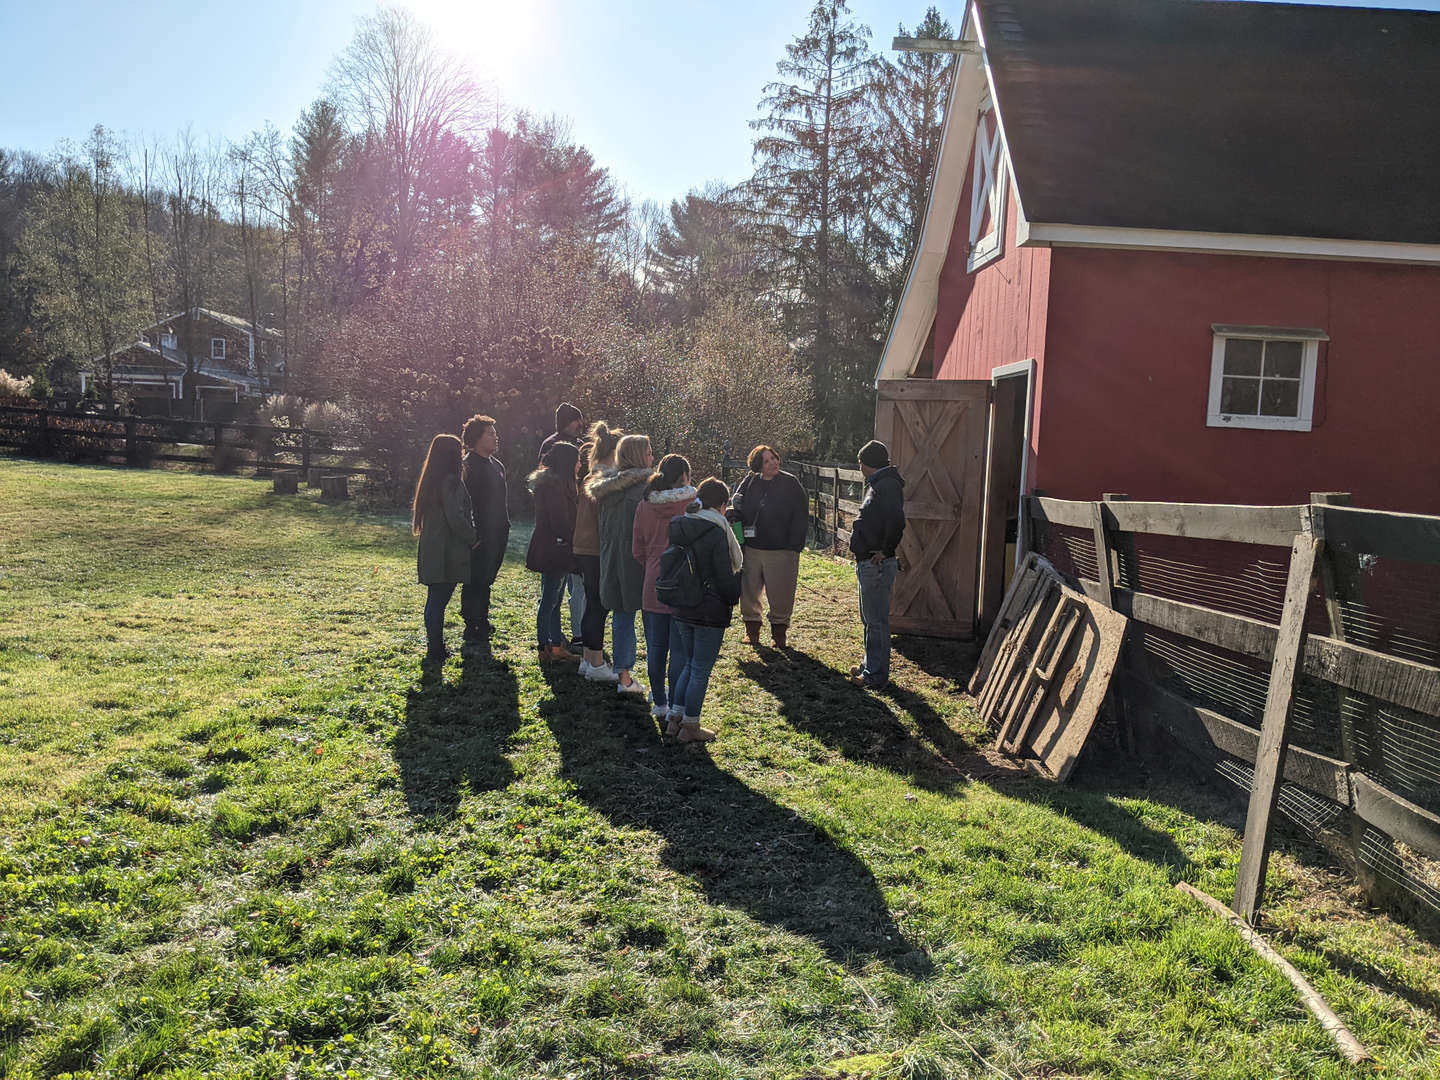 Students gather outside a red barn